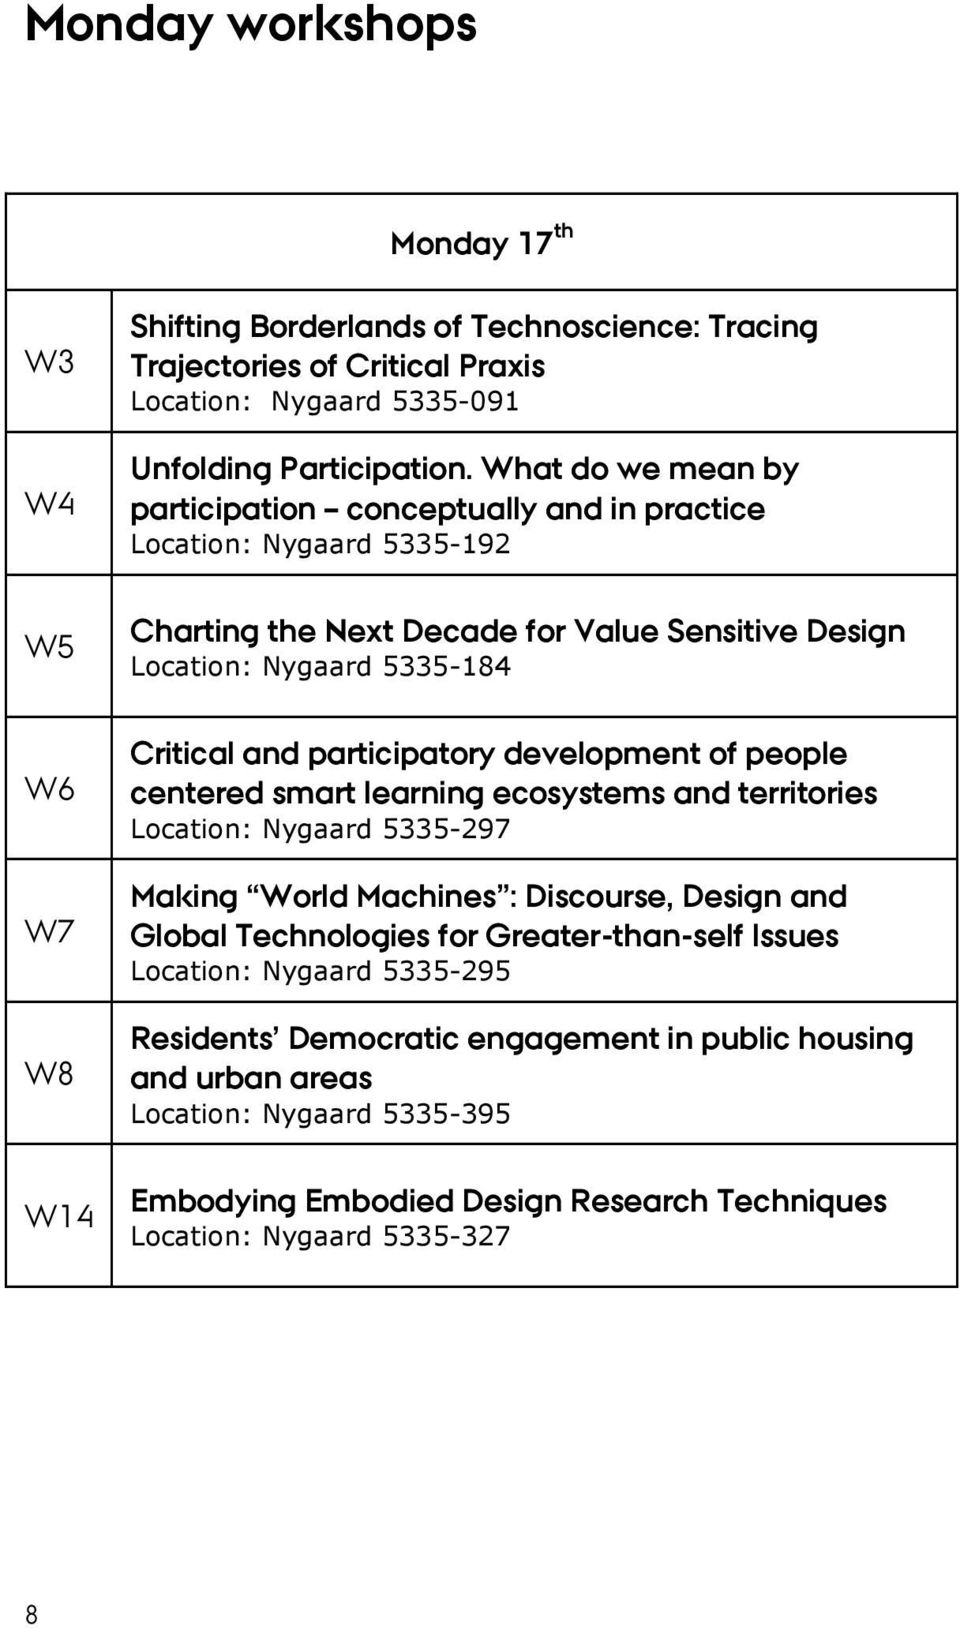 participatory development of people centered smart learning ecosystems and territories Location: Nygaard 5335-297 Making World Machines : Discourse, Design and Global Technologies for